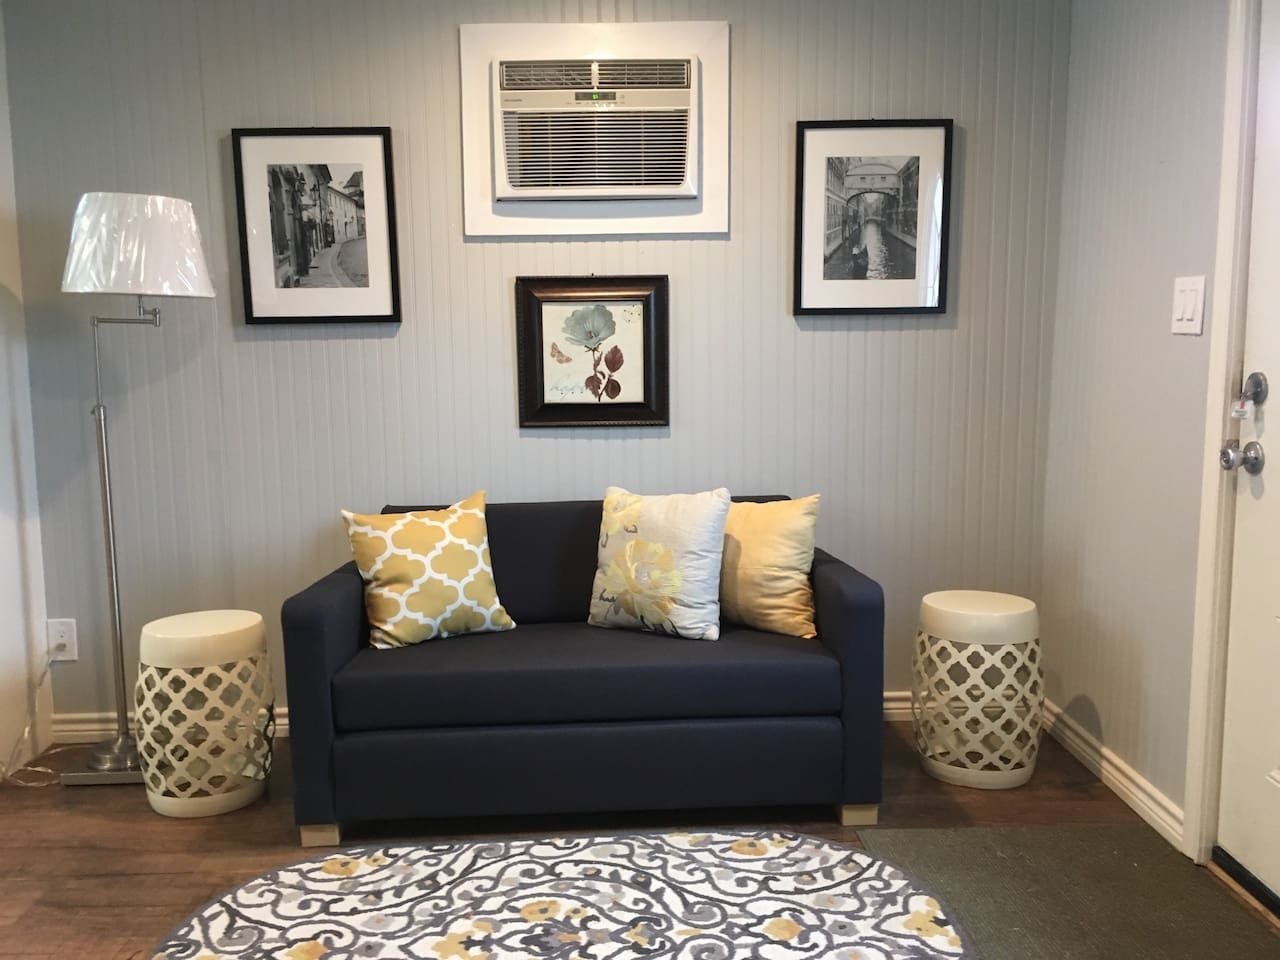 Cute and welcoming living area with TV. The couch extends into a floor bed to accommodate extra guests.